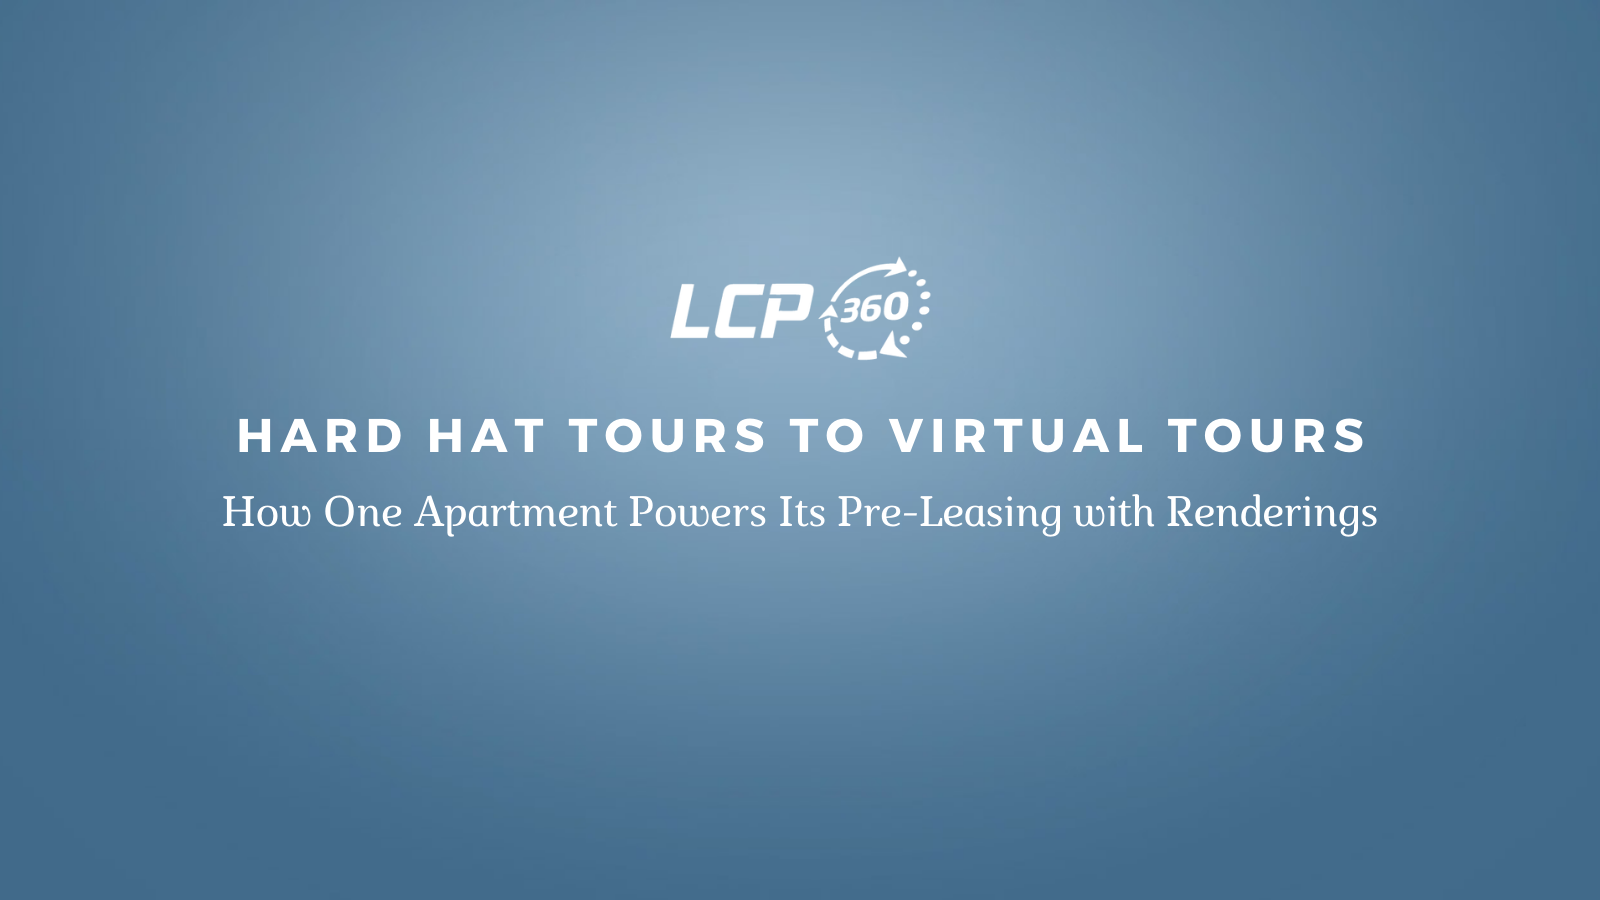 Hard Hat Tours to Virtual Tours: How One Apartment Community Powers Its Pre-Leasing with Renderings